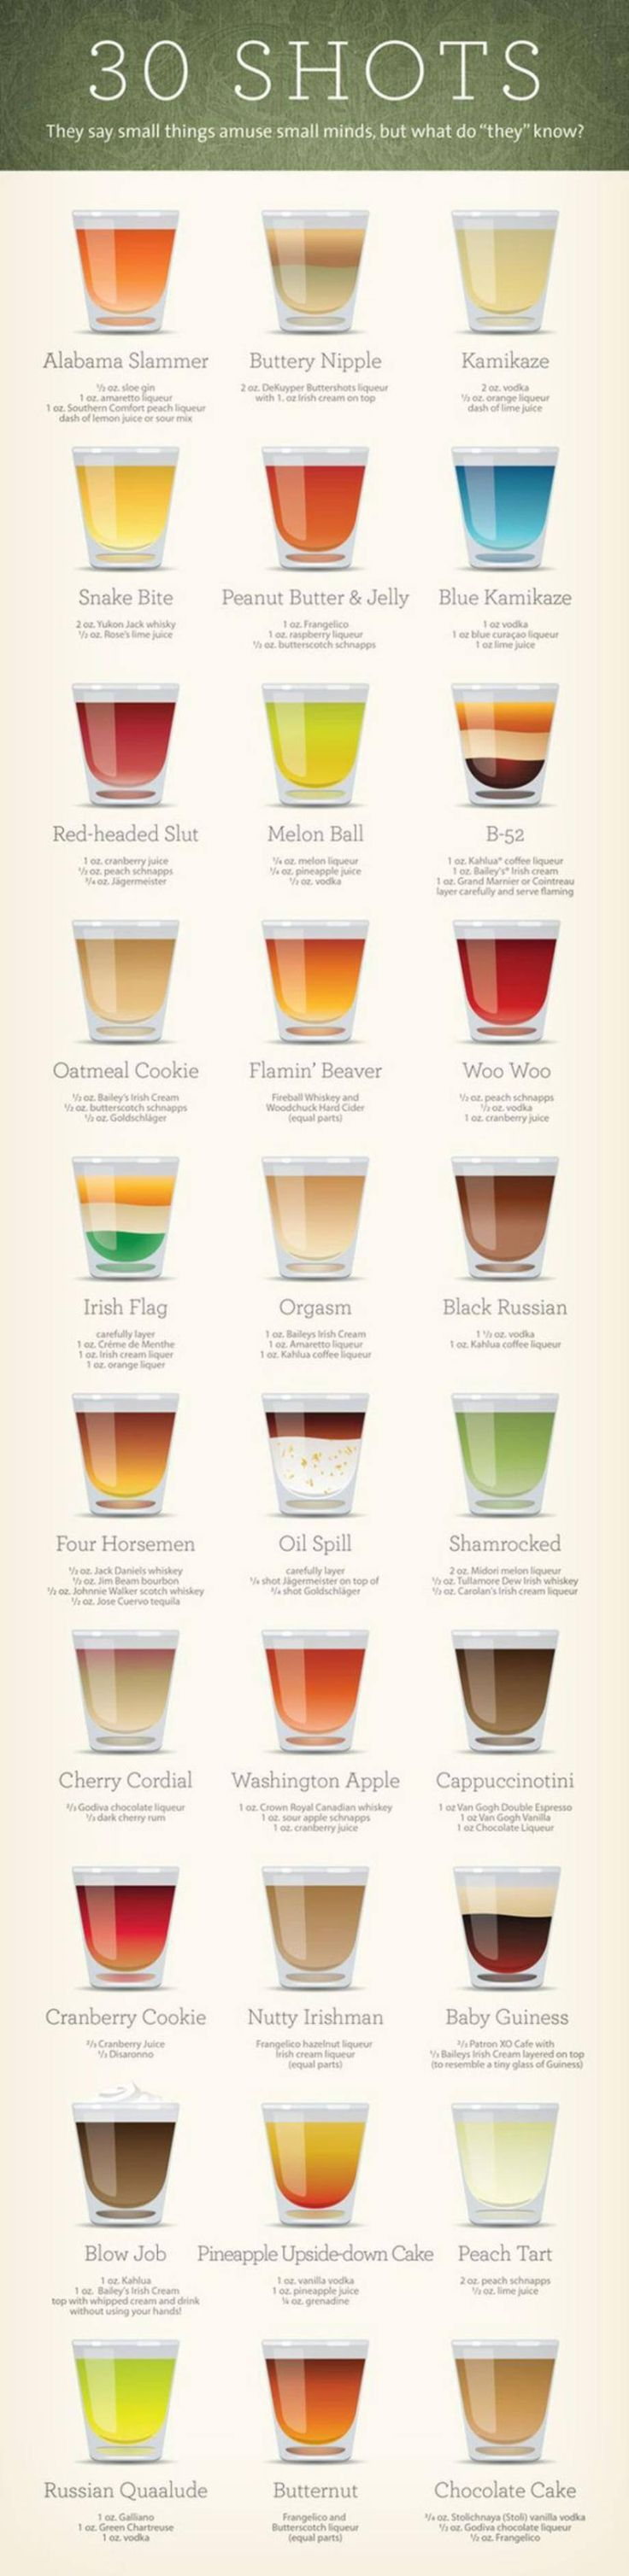 30 Shot Recipes...just tried a blow job last night and it was delicious!!!